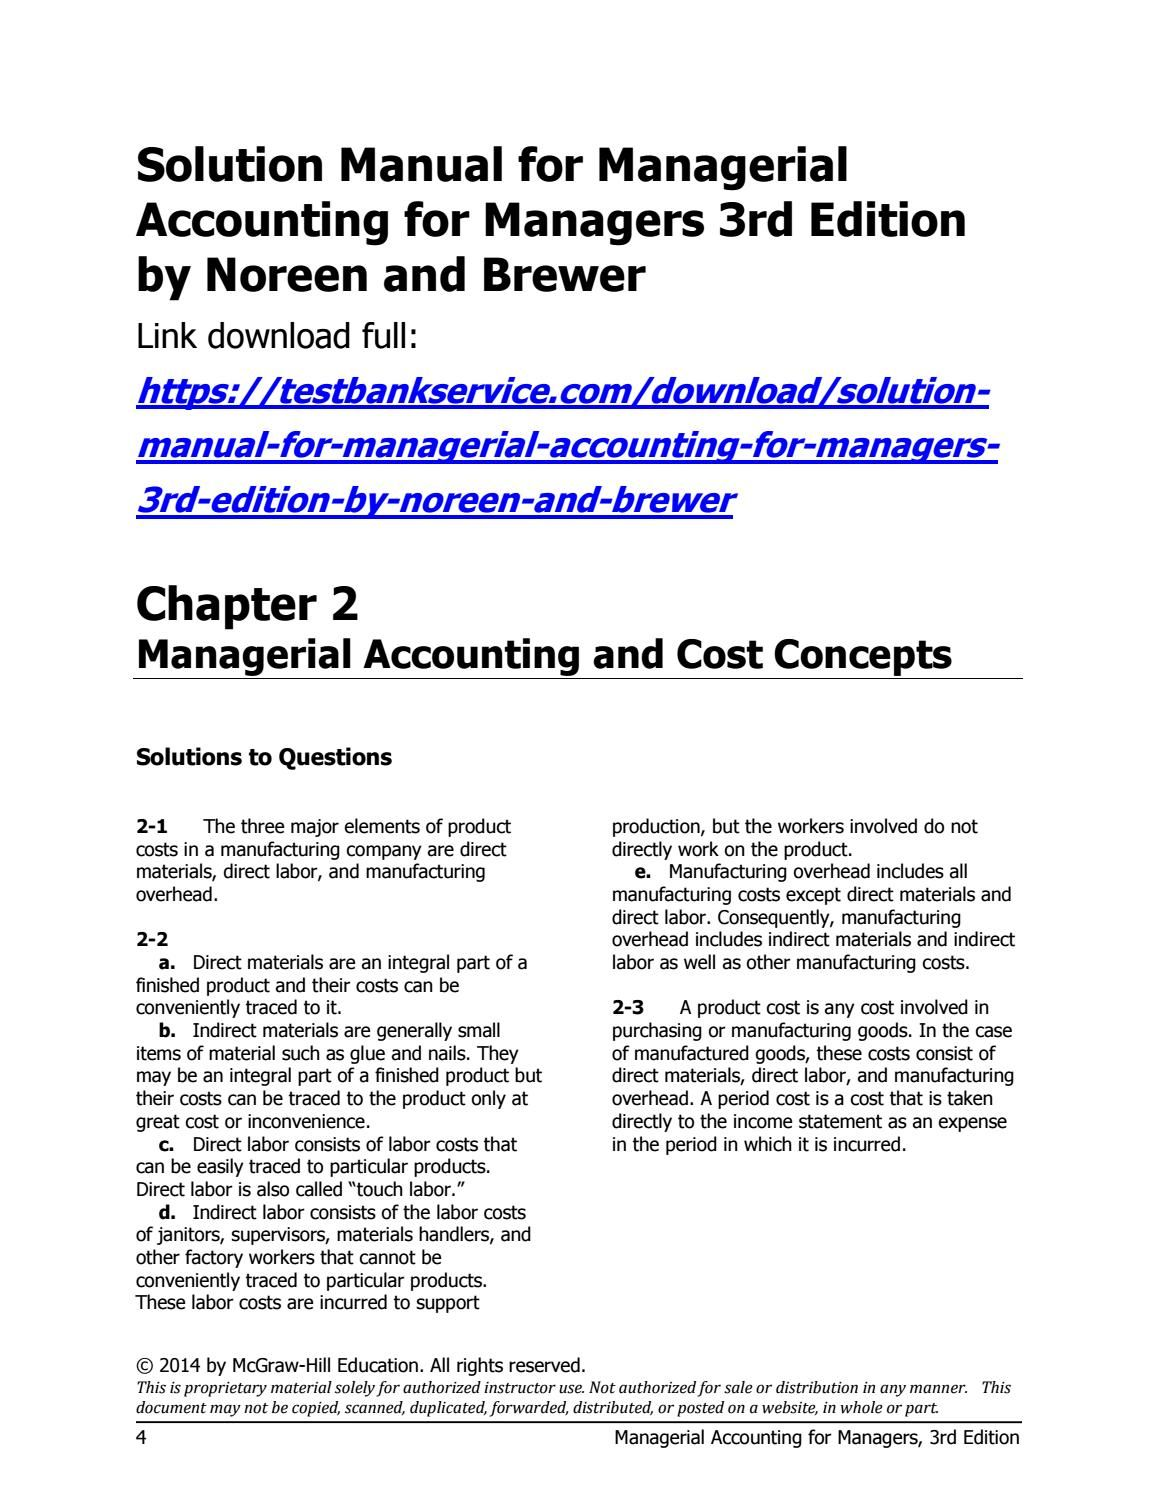 Solution manual for managerial accounting for managers 3rd edition by  noreen and brewer